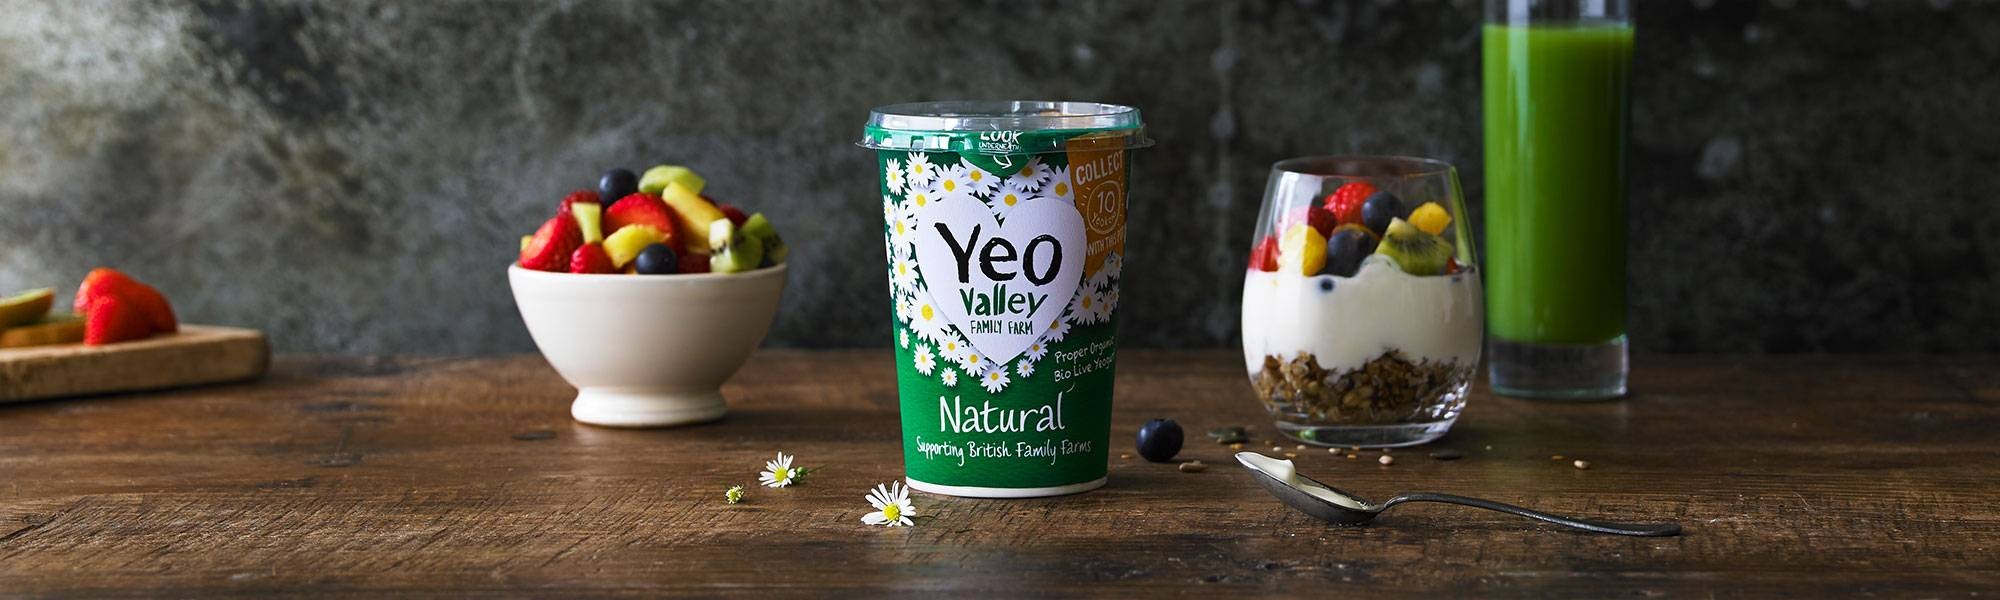 yeo valley organic natural yogurt made in somerset